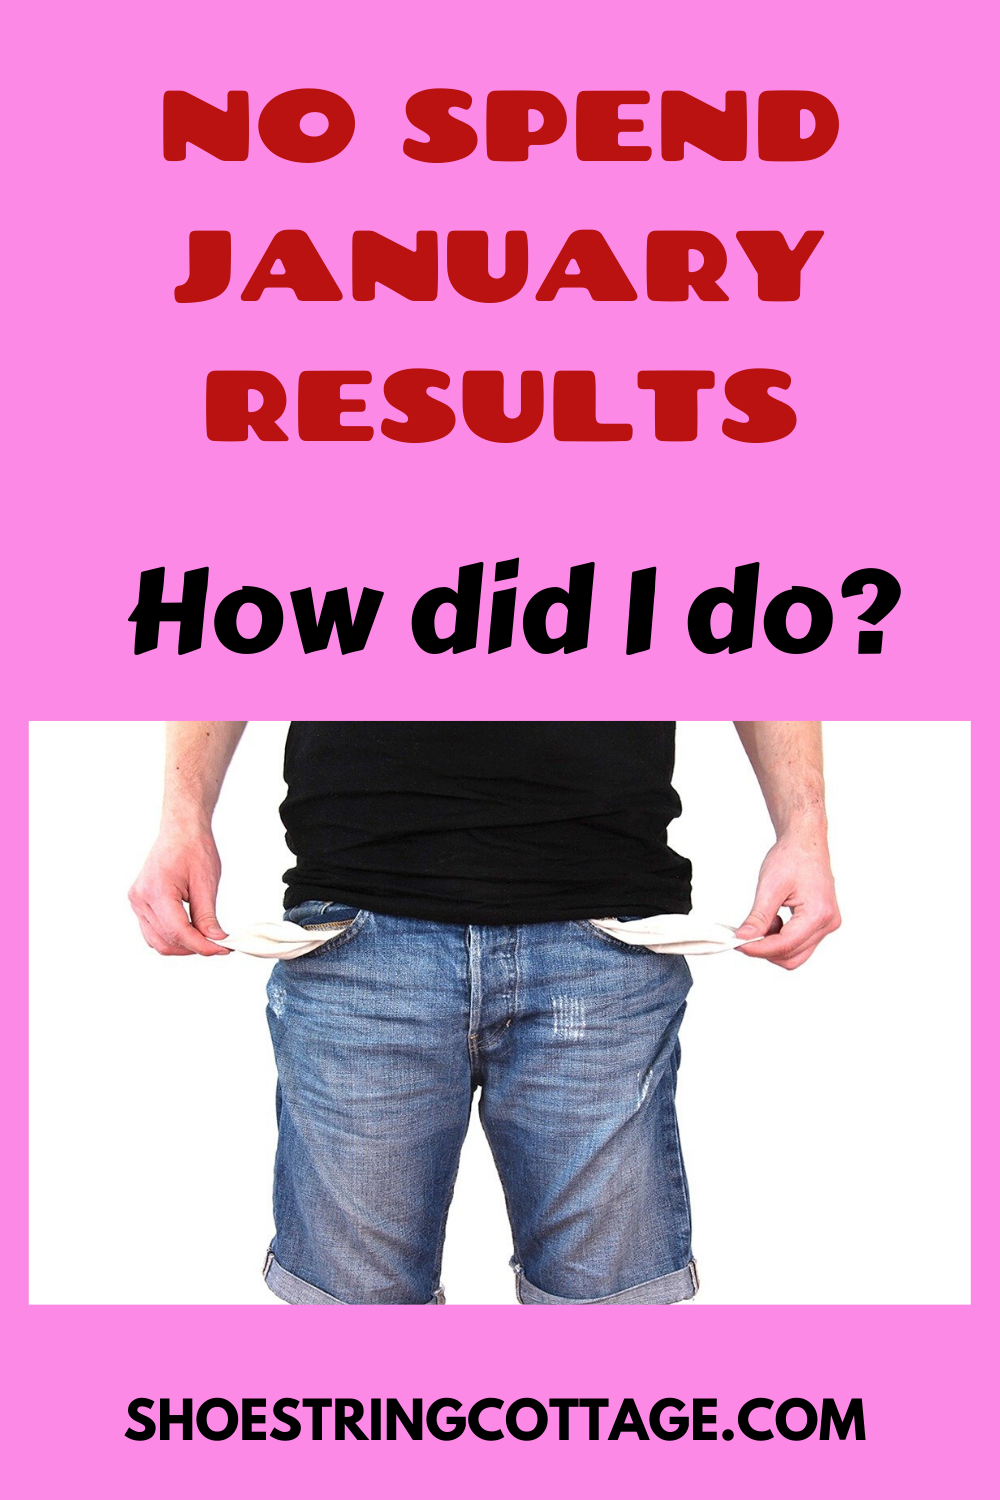 NO SPEND JANUARY RESULTS